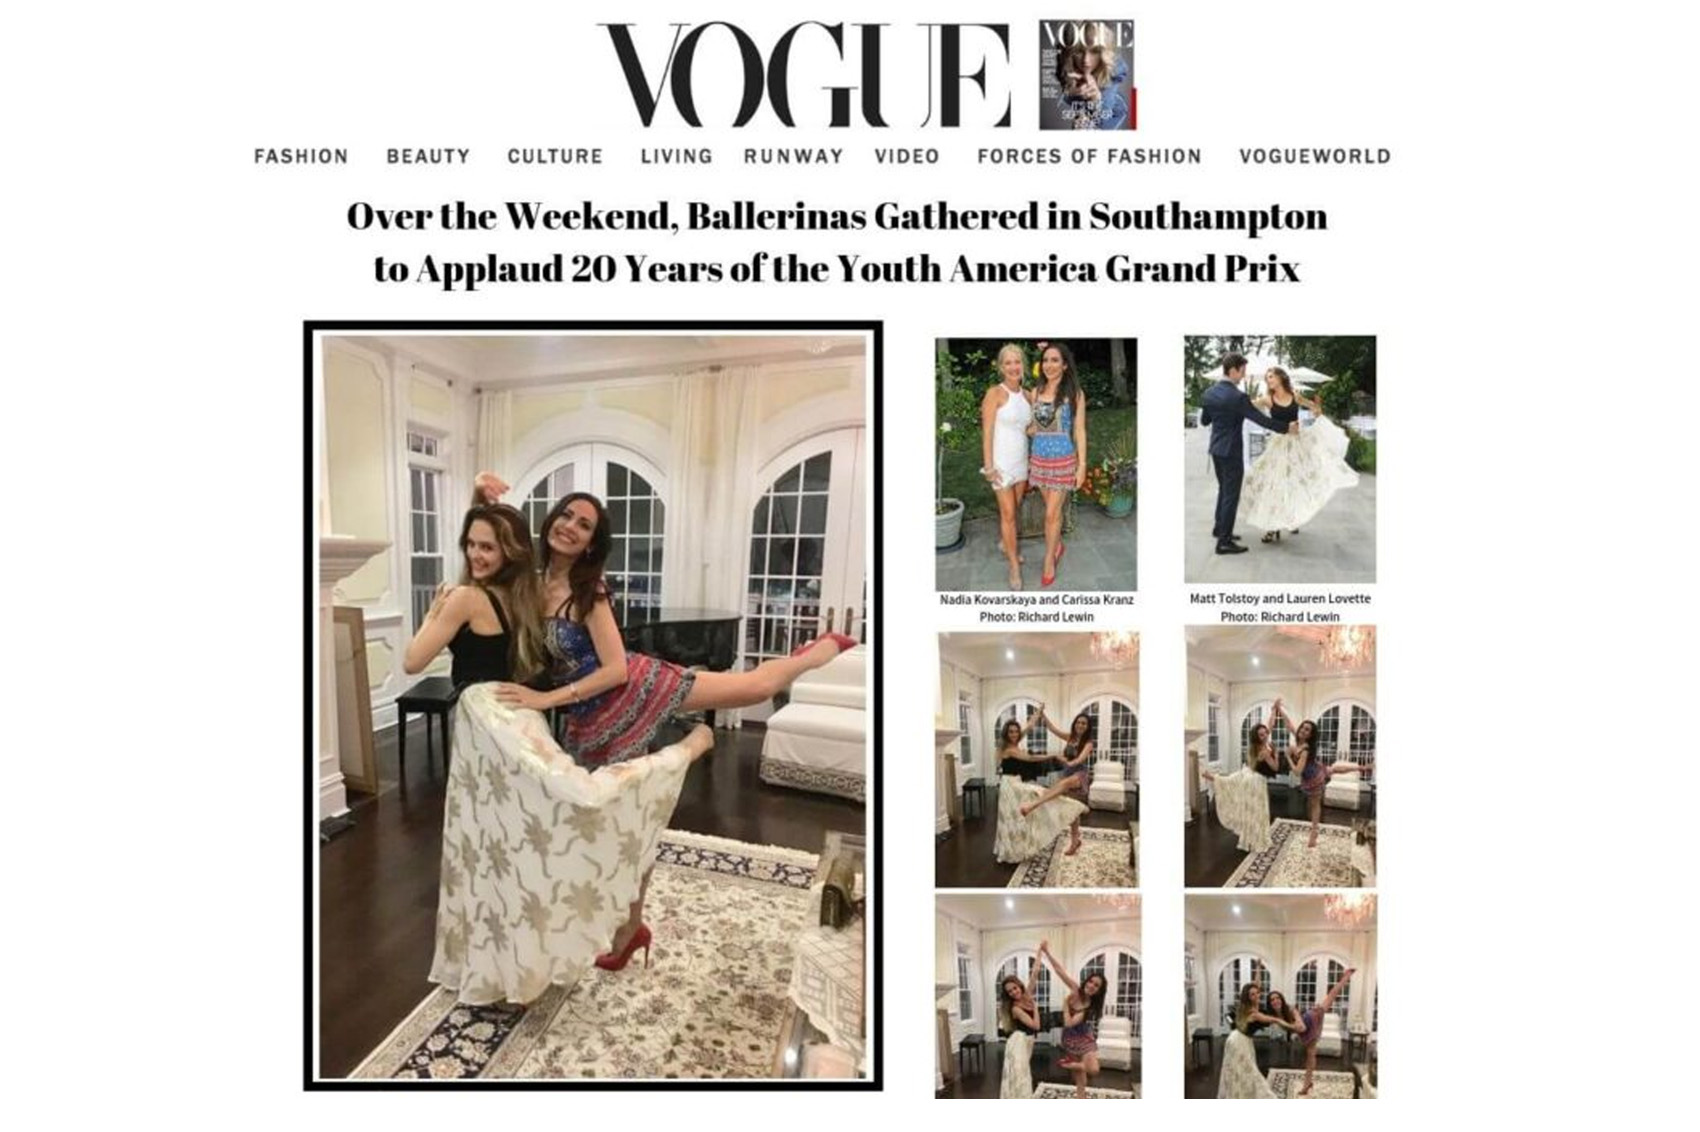 Vogue: Over the Weekend, Ballerinas Gathered in Southampton to Applaud 20 Years of the Youth America Grand Prix